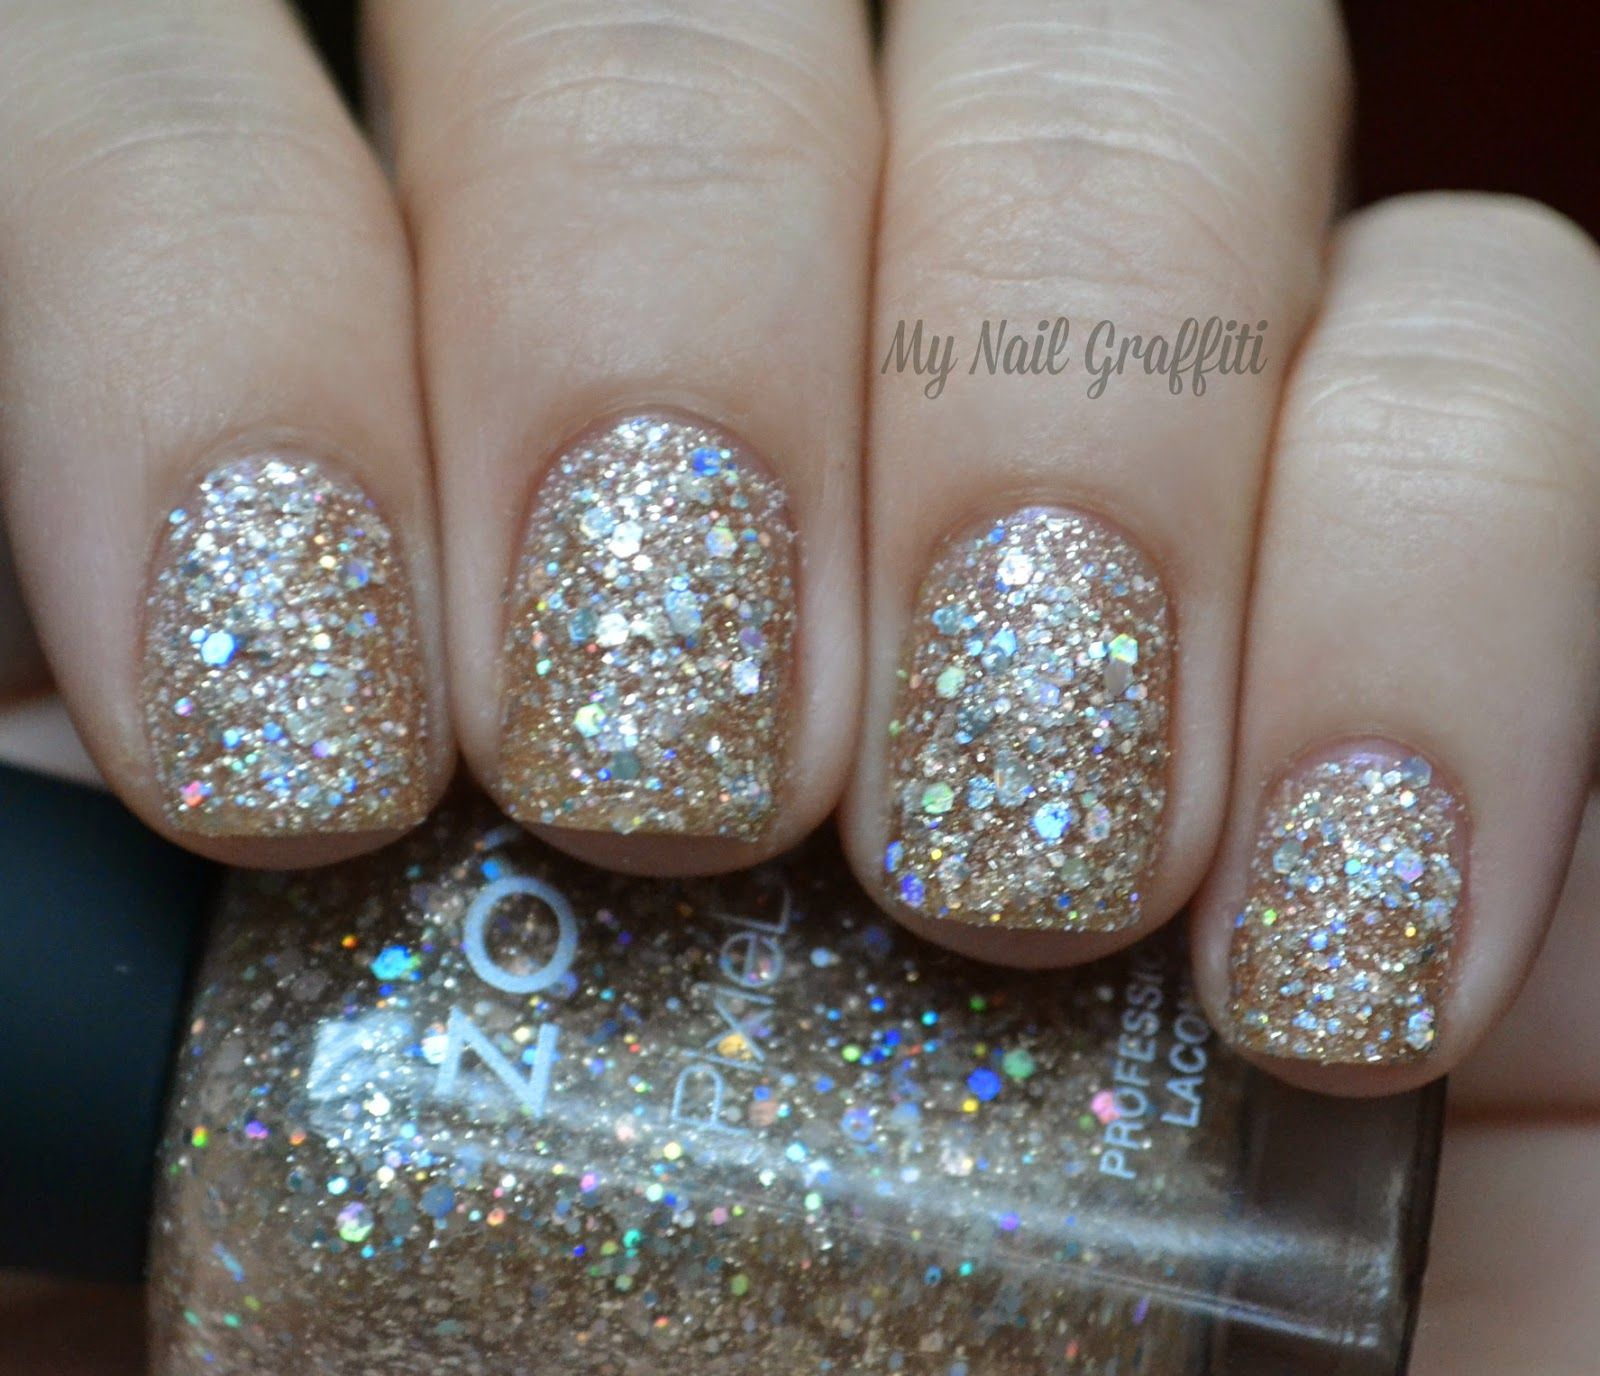 Zoya PixieDust in Chyna swatches+review   Confessions of a